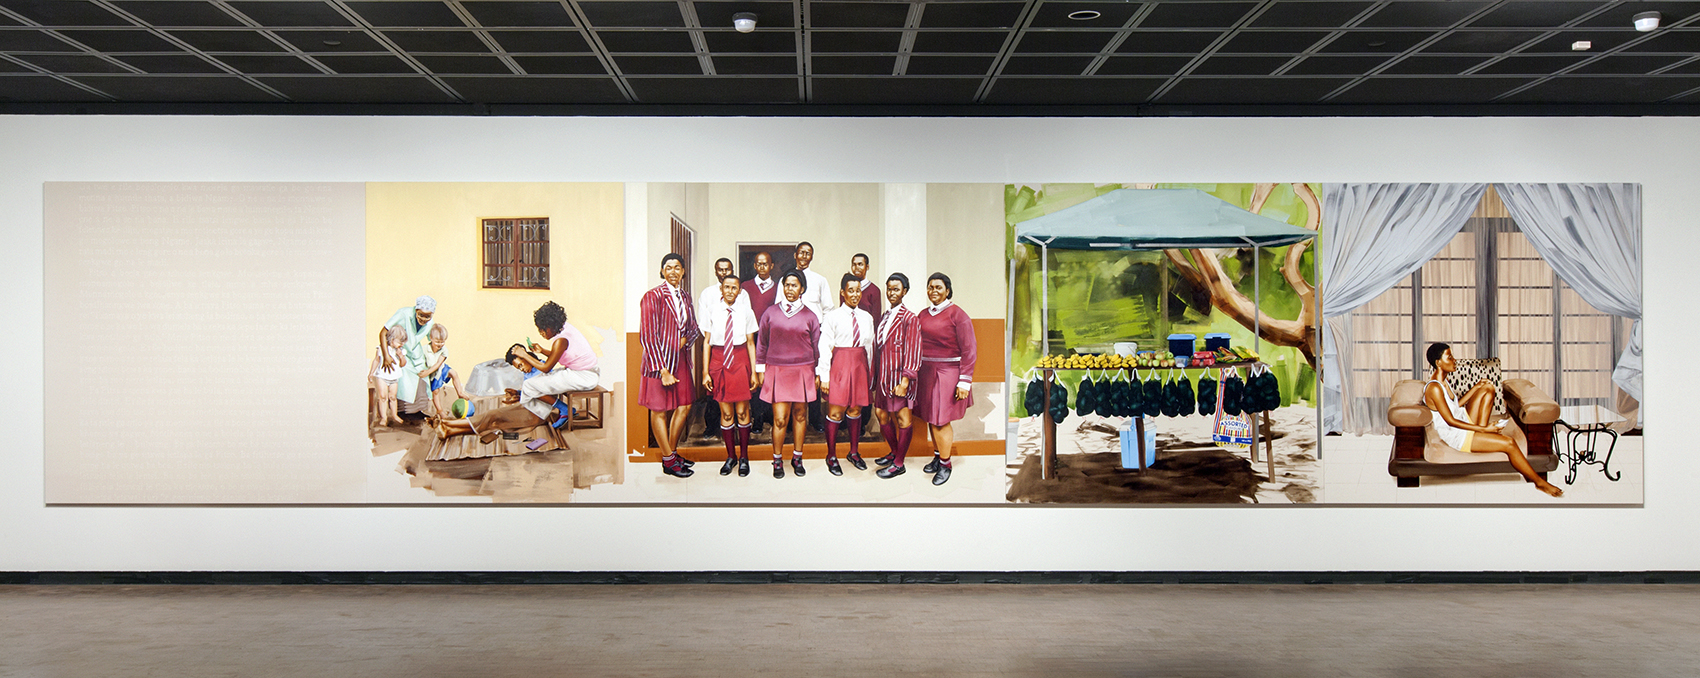 Meleko Mokgosi: Bread, Butter, and Power, 2018, Installation view, Fowler Museum at UCLA. Courtesy the artist and Honor Fraser, Los Angeles. Photo © Monica Nouwens.